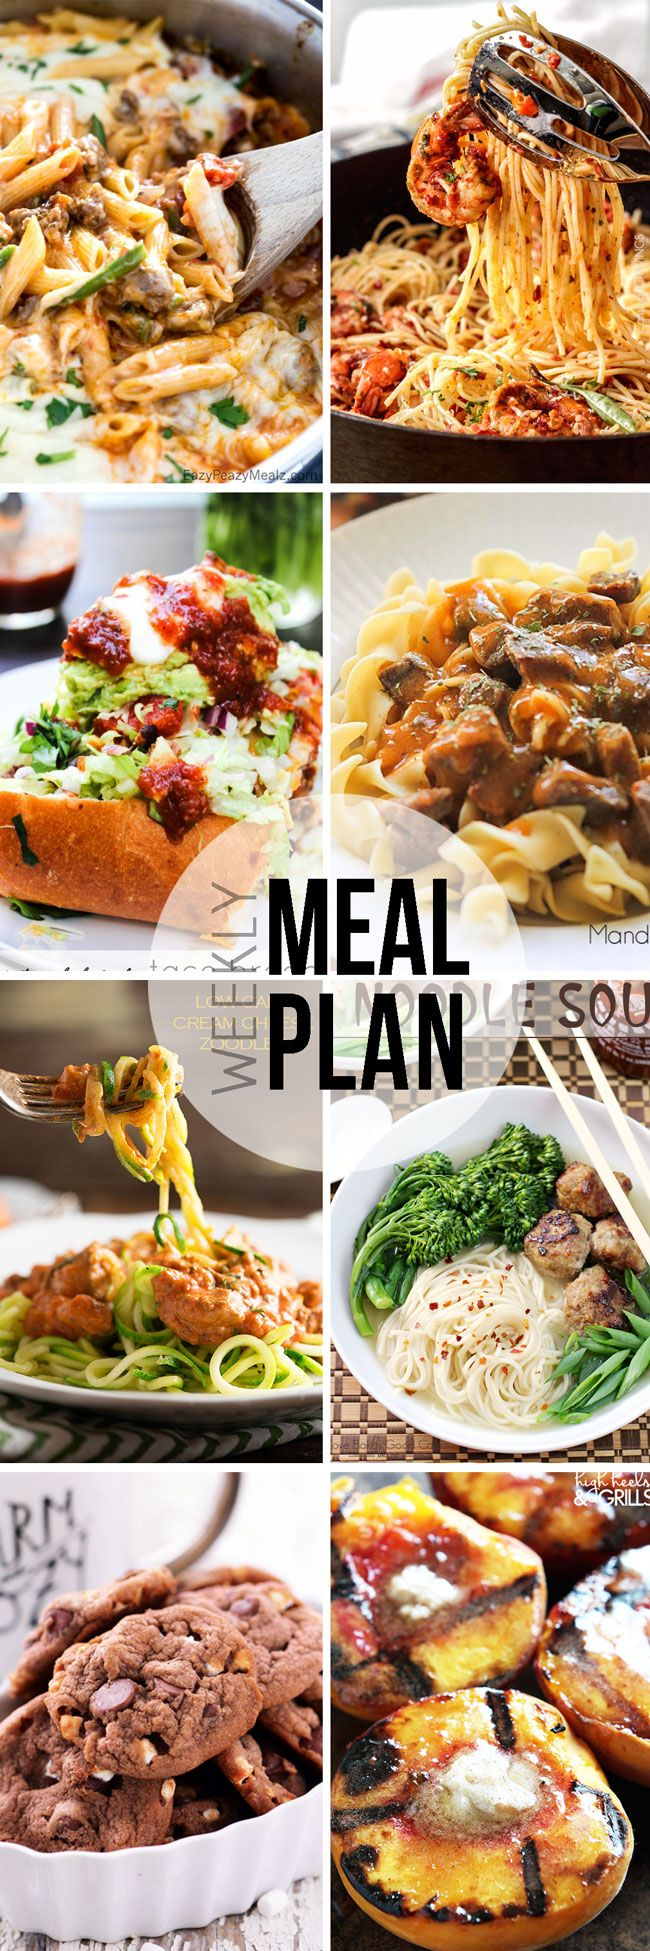 Easy Meal Plan #33 - This is such a great meal plan to follow! Lots of easy dinner recipe ideas.